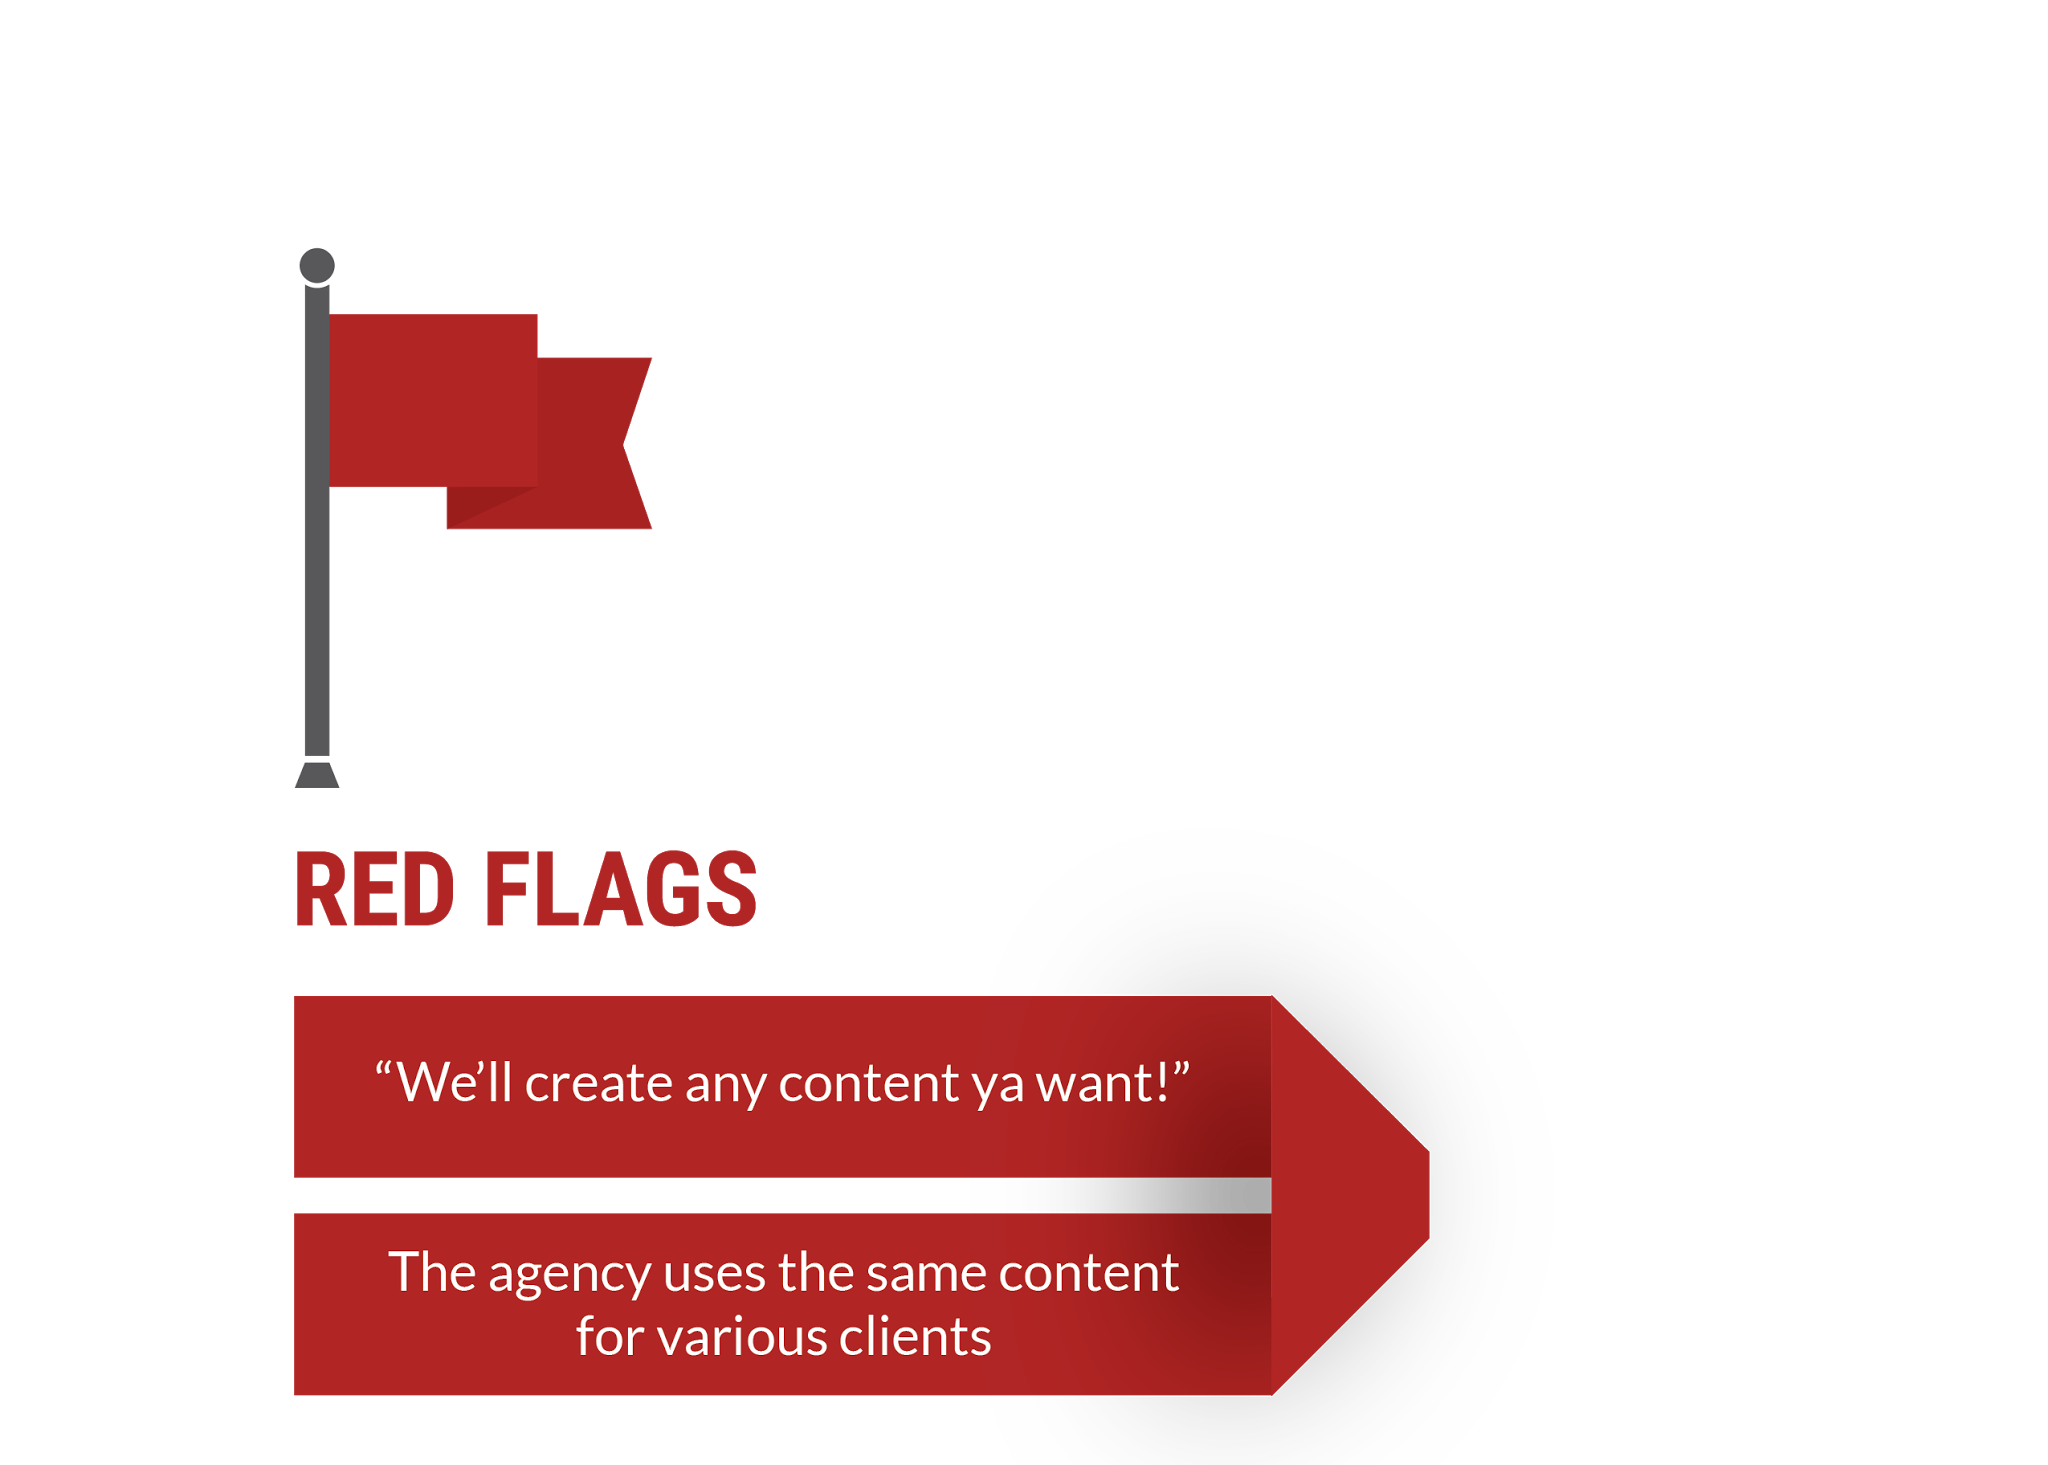 red flags: we'll create any content ya want! The agency uses the same content for various clients